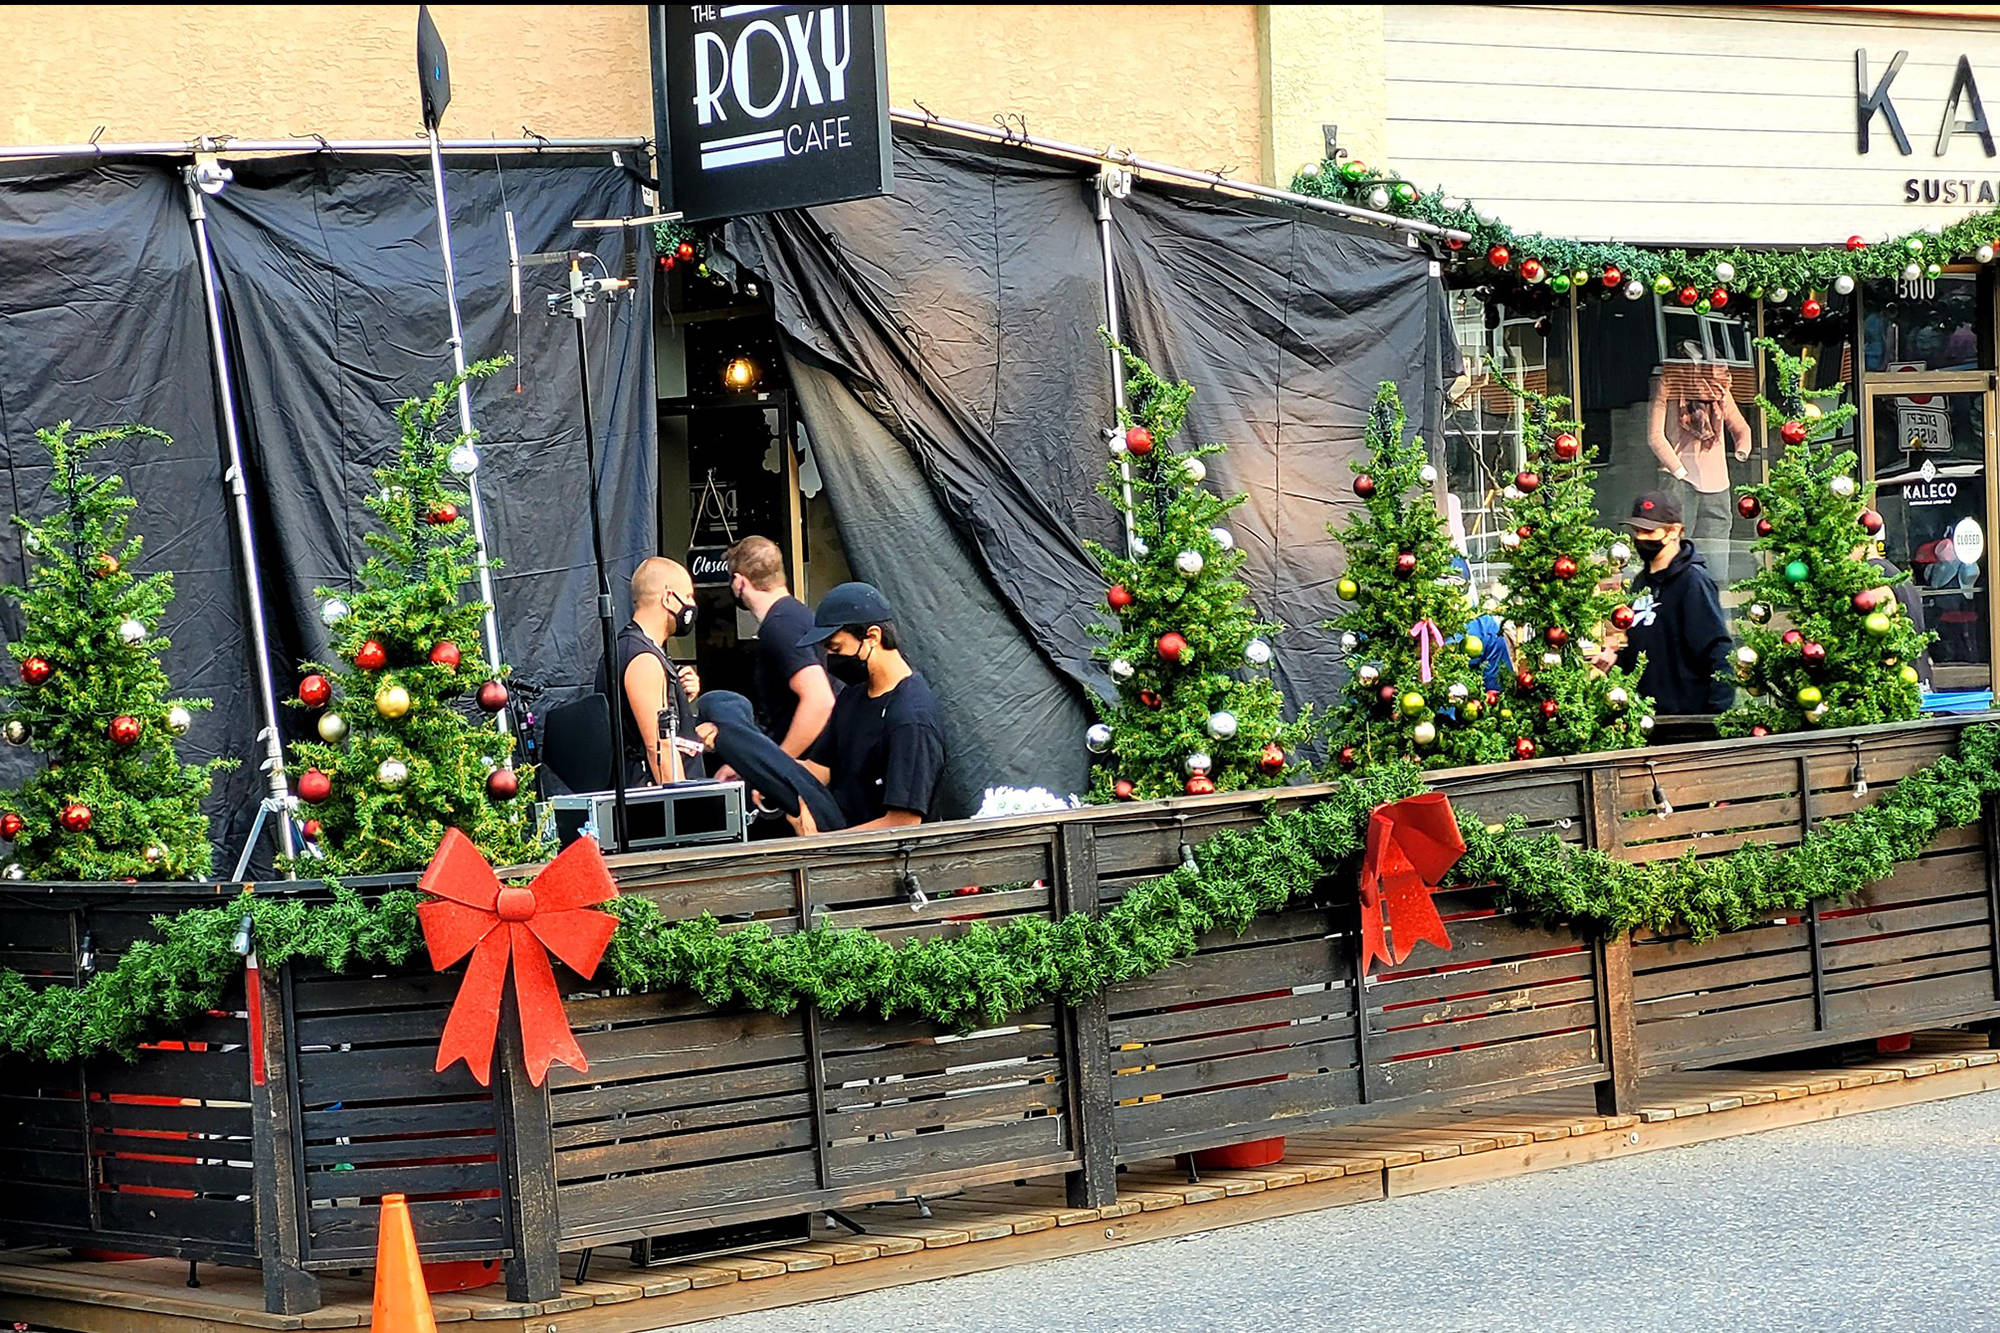 Decorations were hung with care around downtown Vernon for a new film being shot in town Aug. 9, 2021. (Greater Vernon Chamber of Commerce photo)